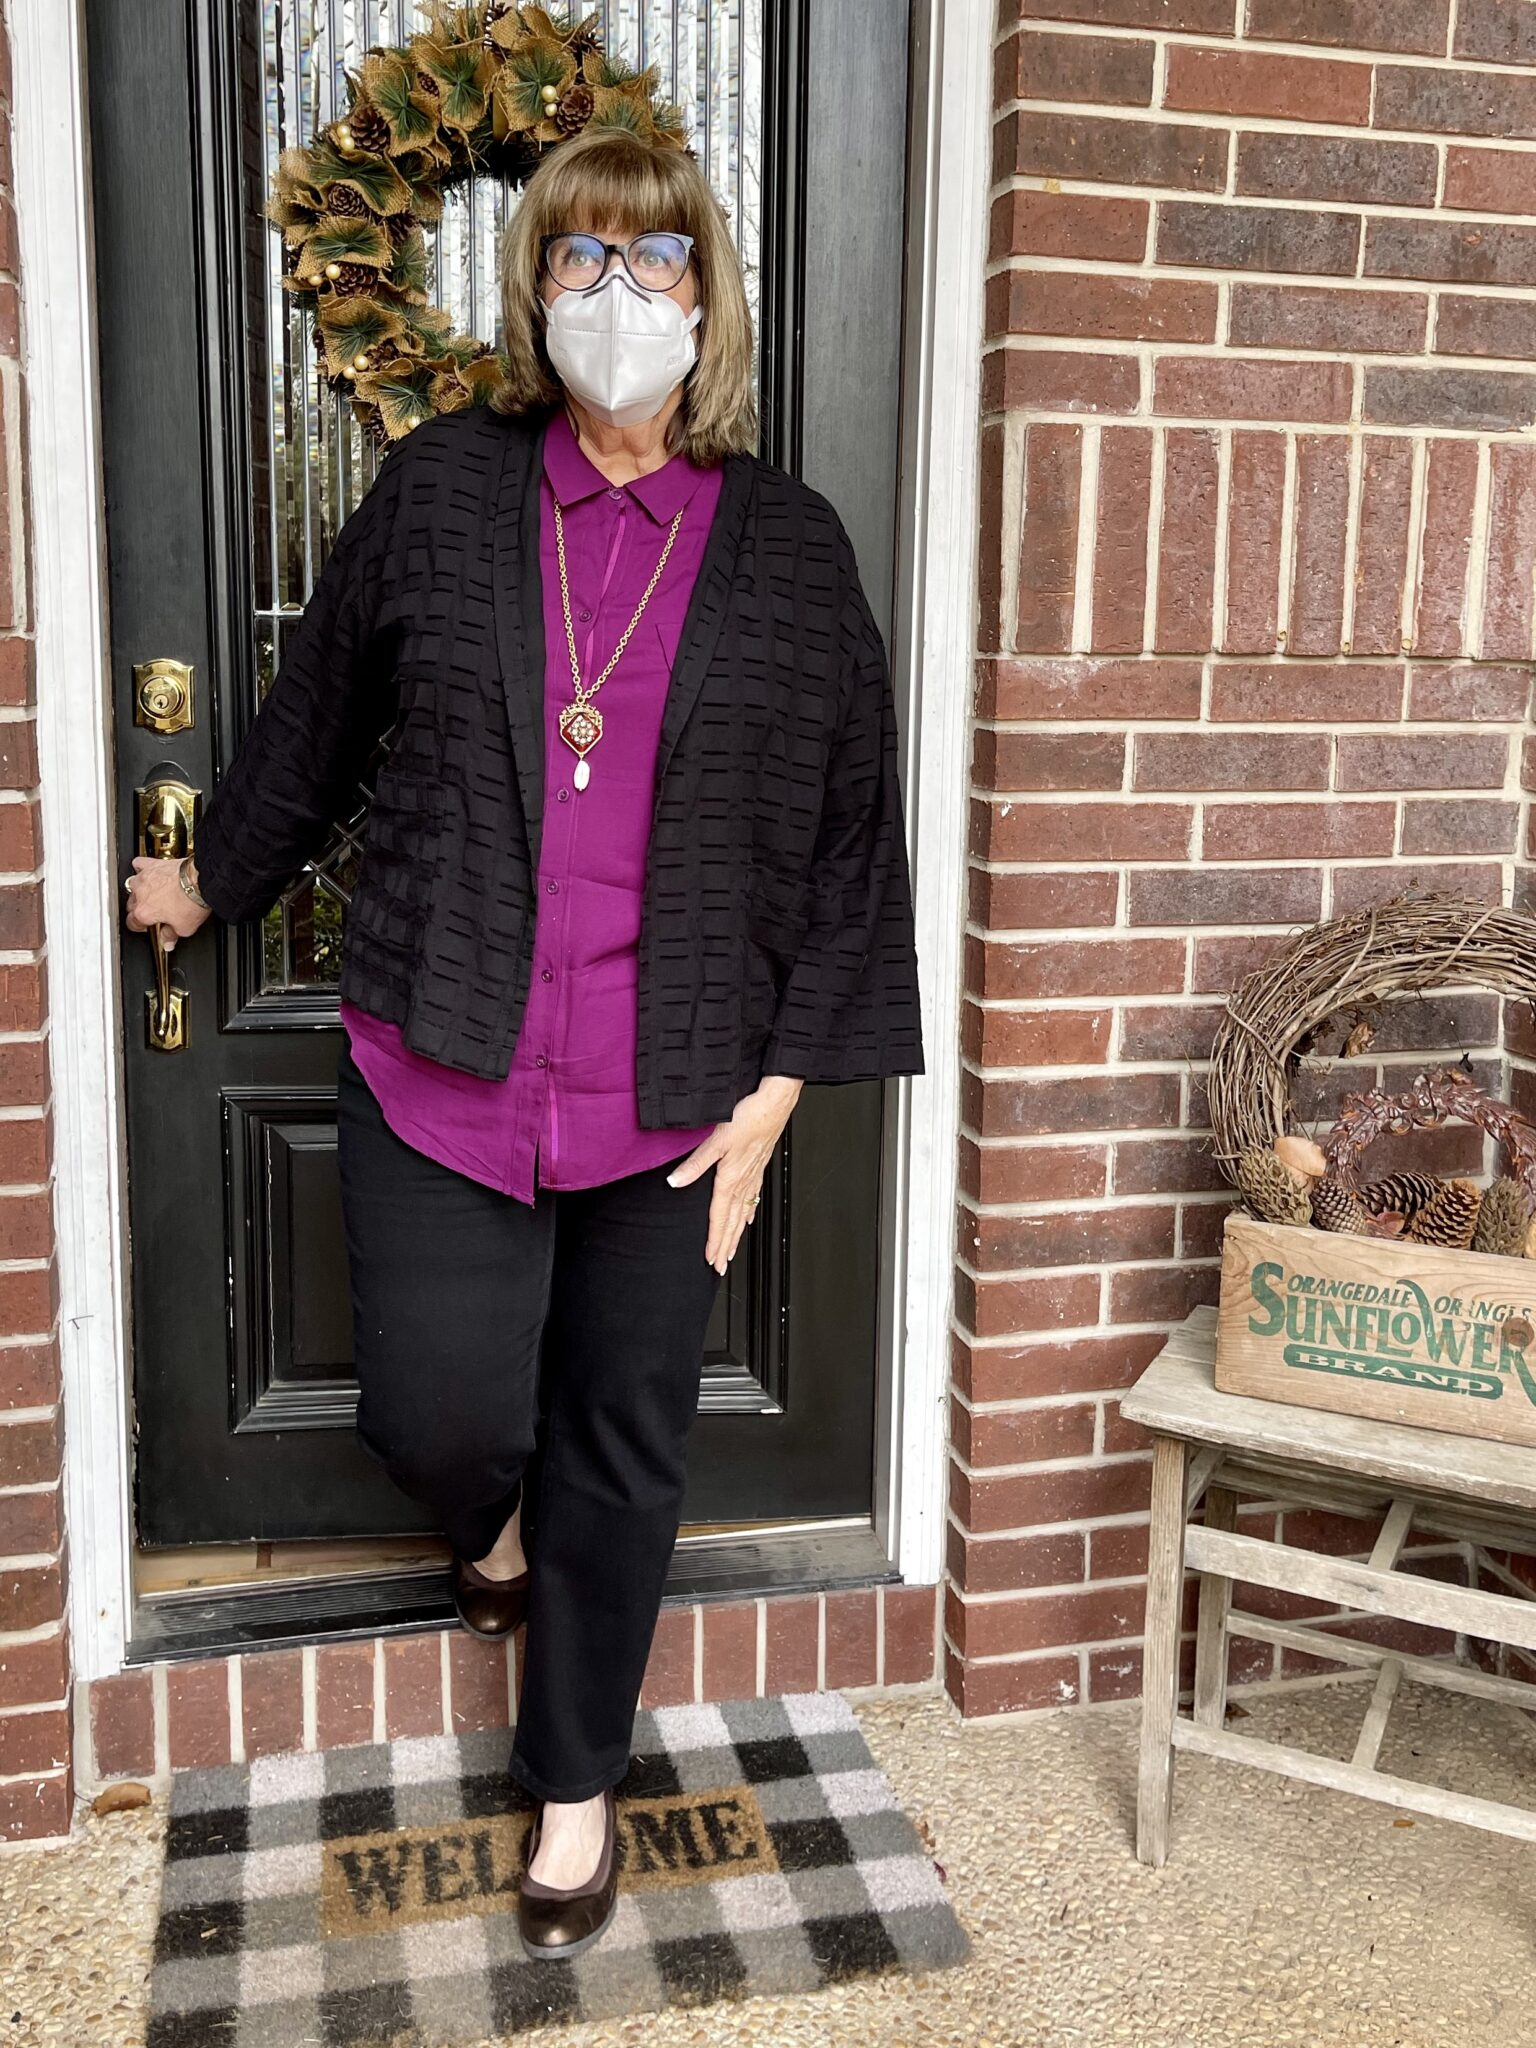 Confident dress in a mask outside of home every day